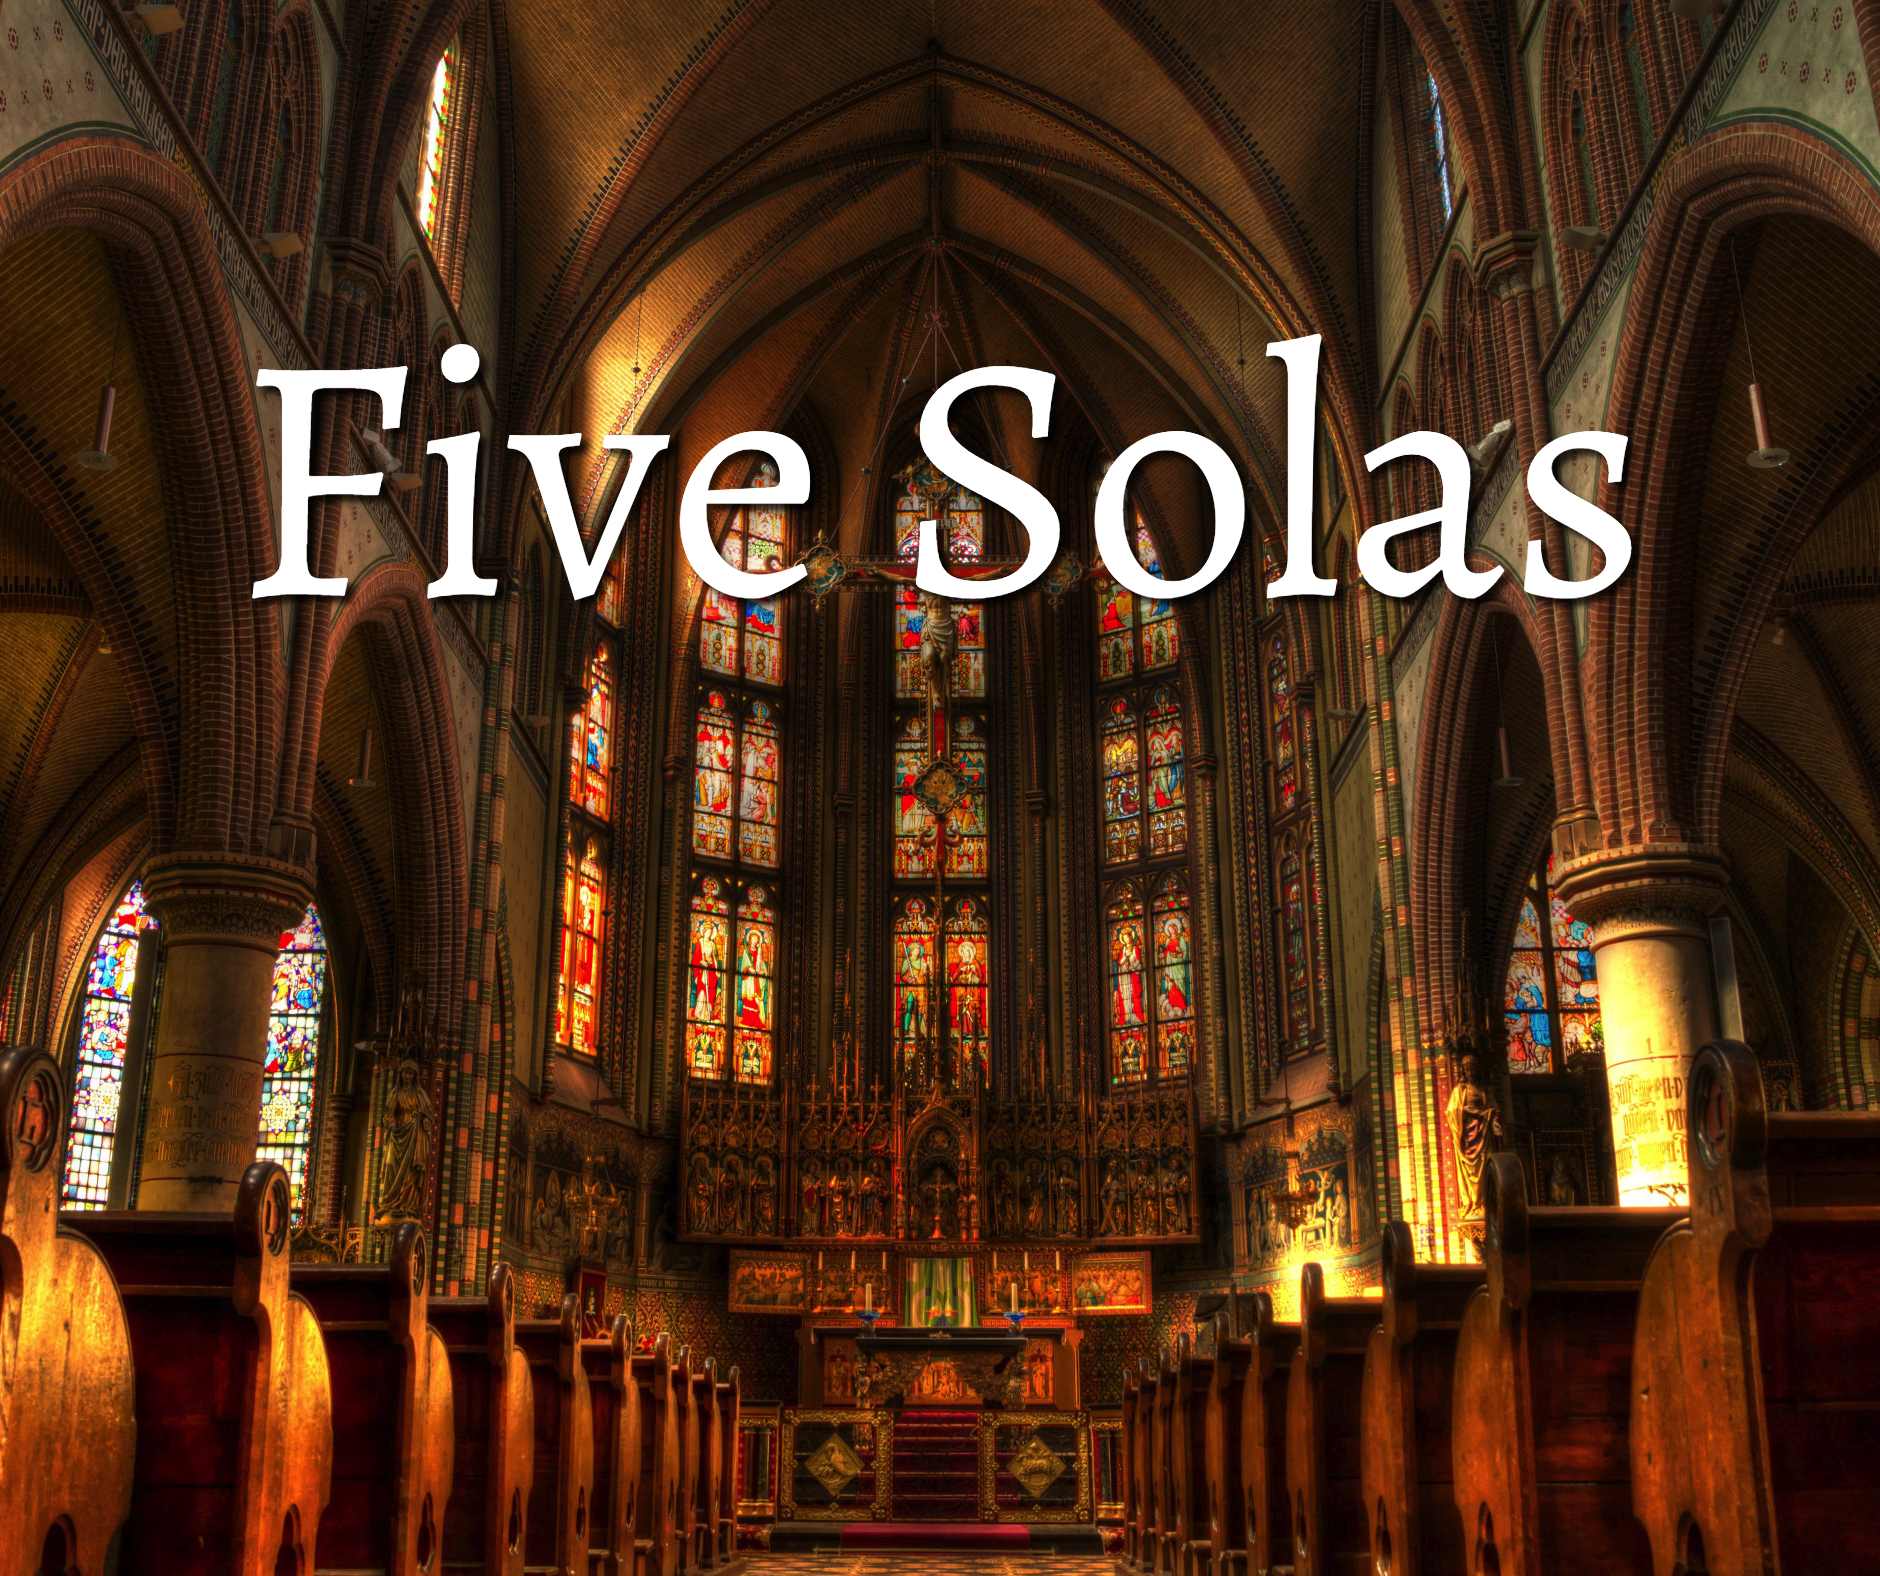 5 Solas Website.jpg